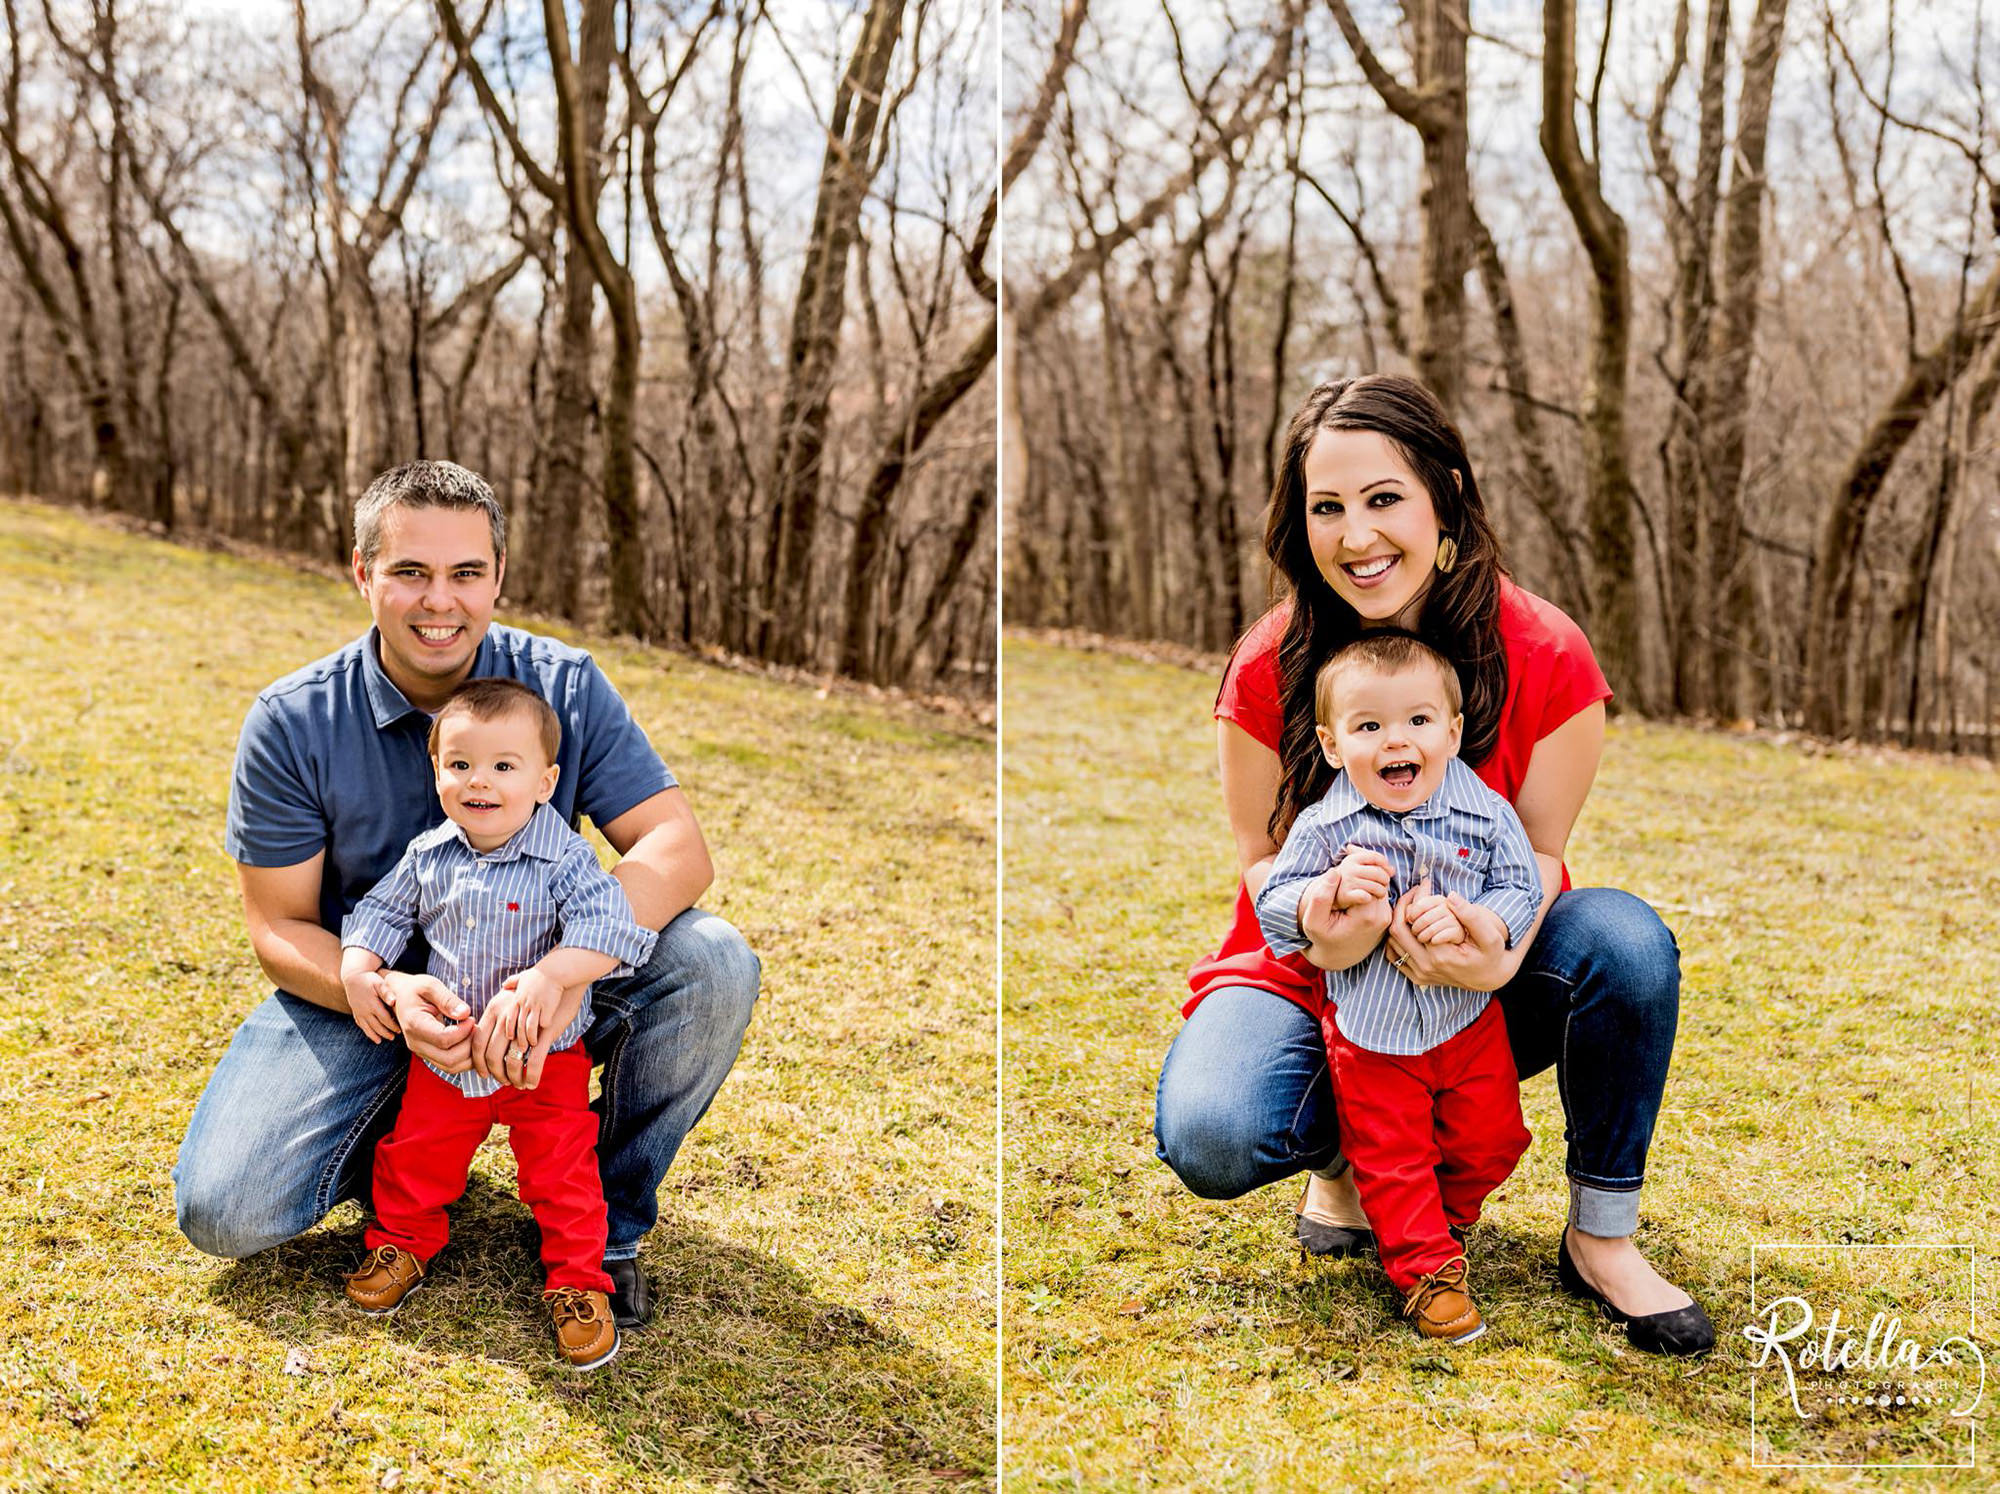 Rotella Photography - mom and dad posed outside in grass with baby